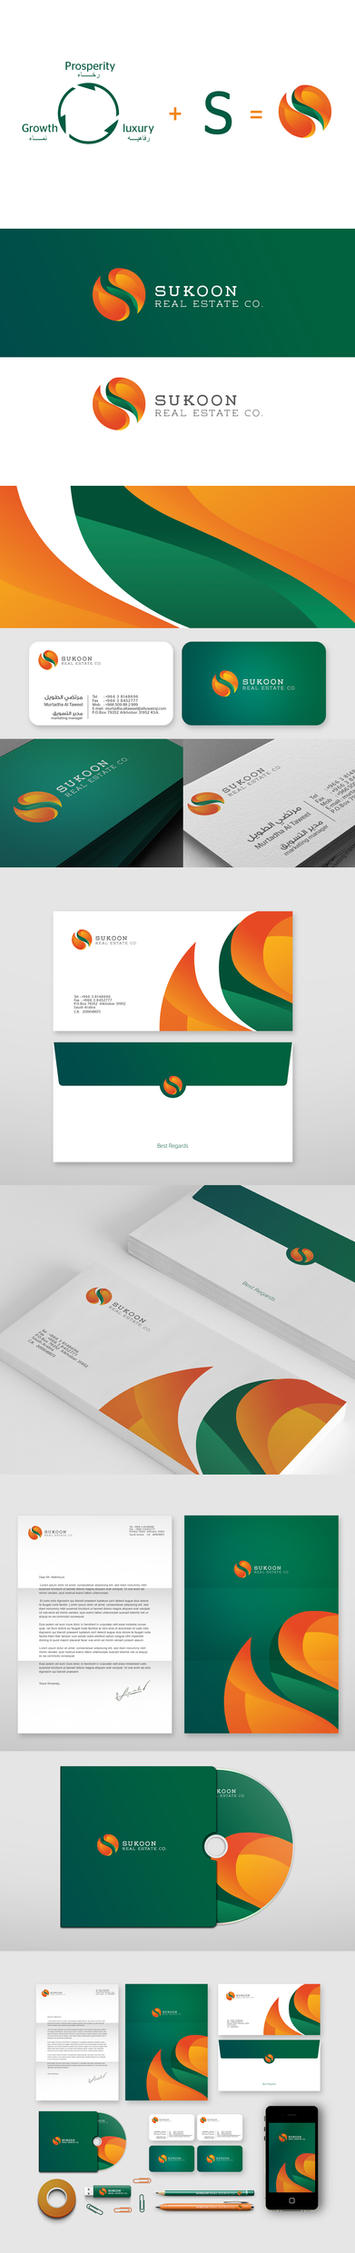 Sukoon Corporate Identity II by elhosary